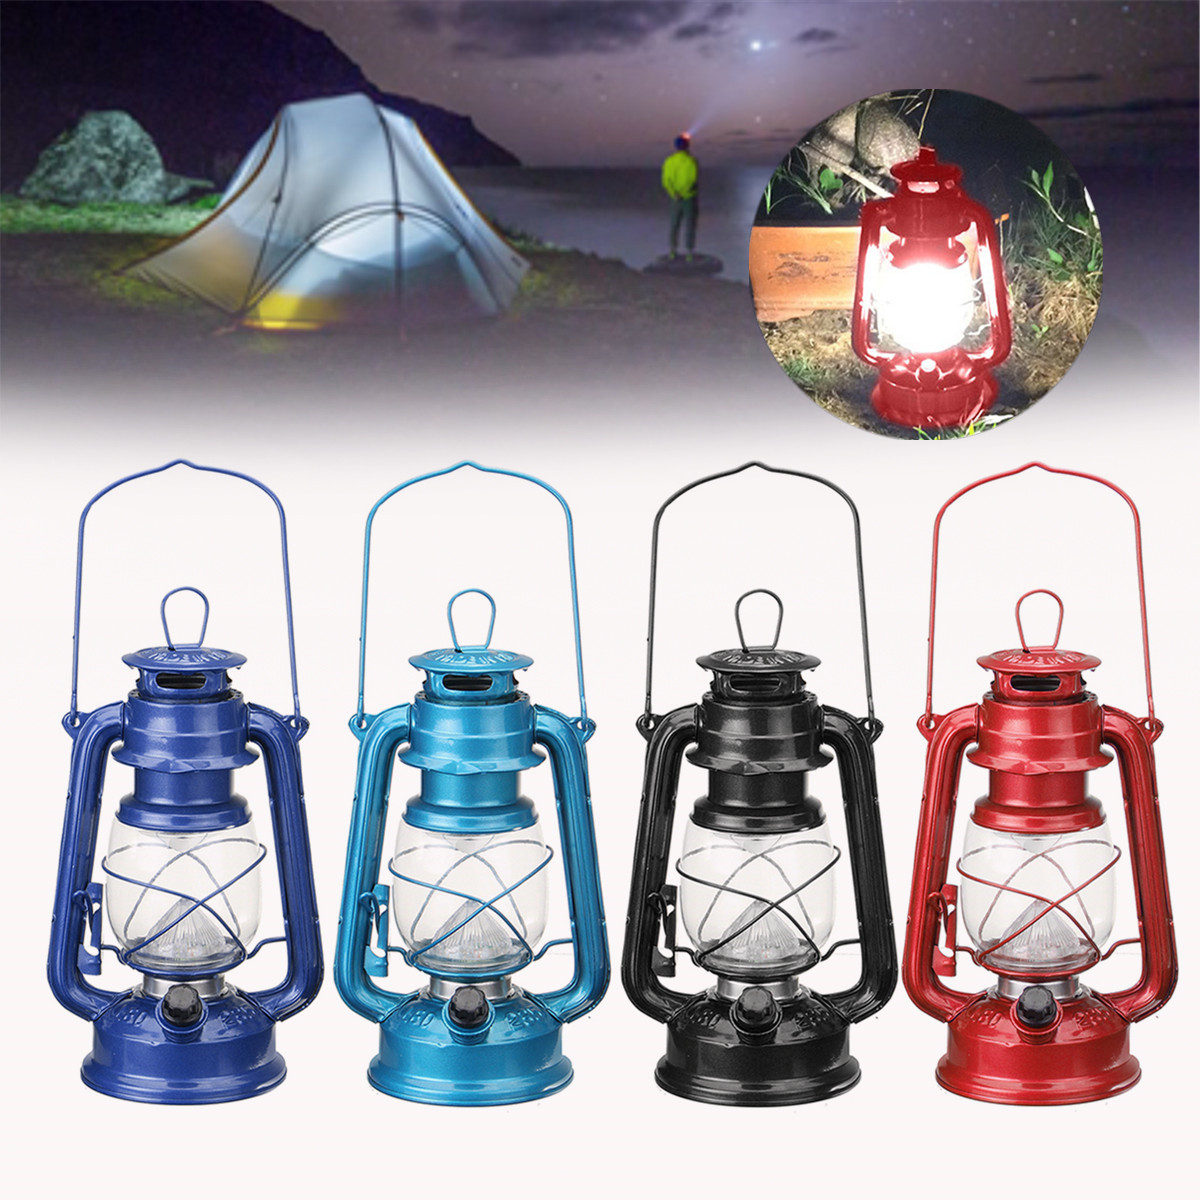 vintage style 15 led lantern battery operated indoor outdoor camping fishing alex nld. Black Bedroom Furniture Sets. Home Design Ideas